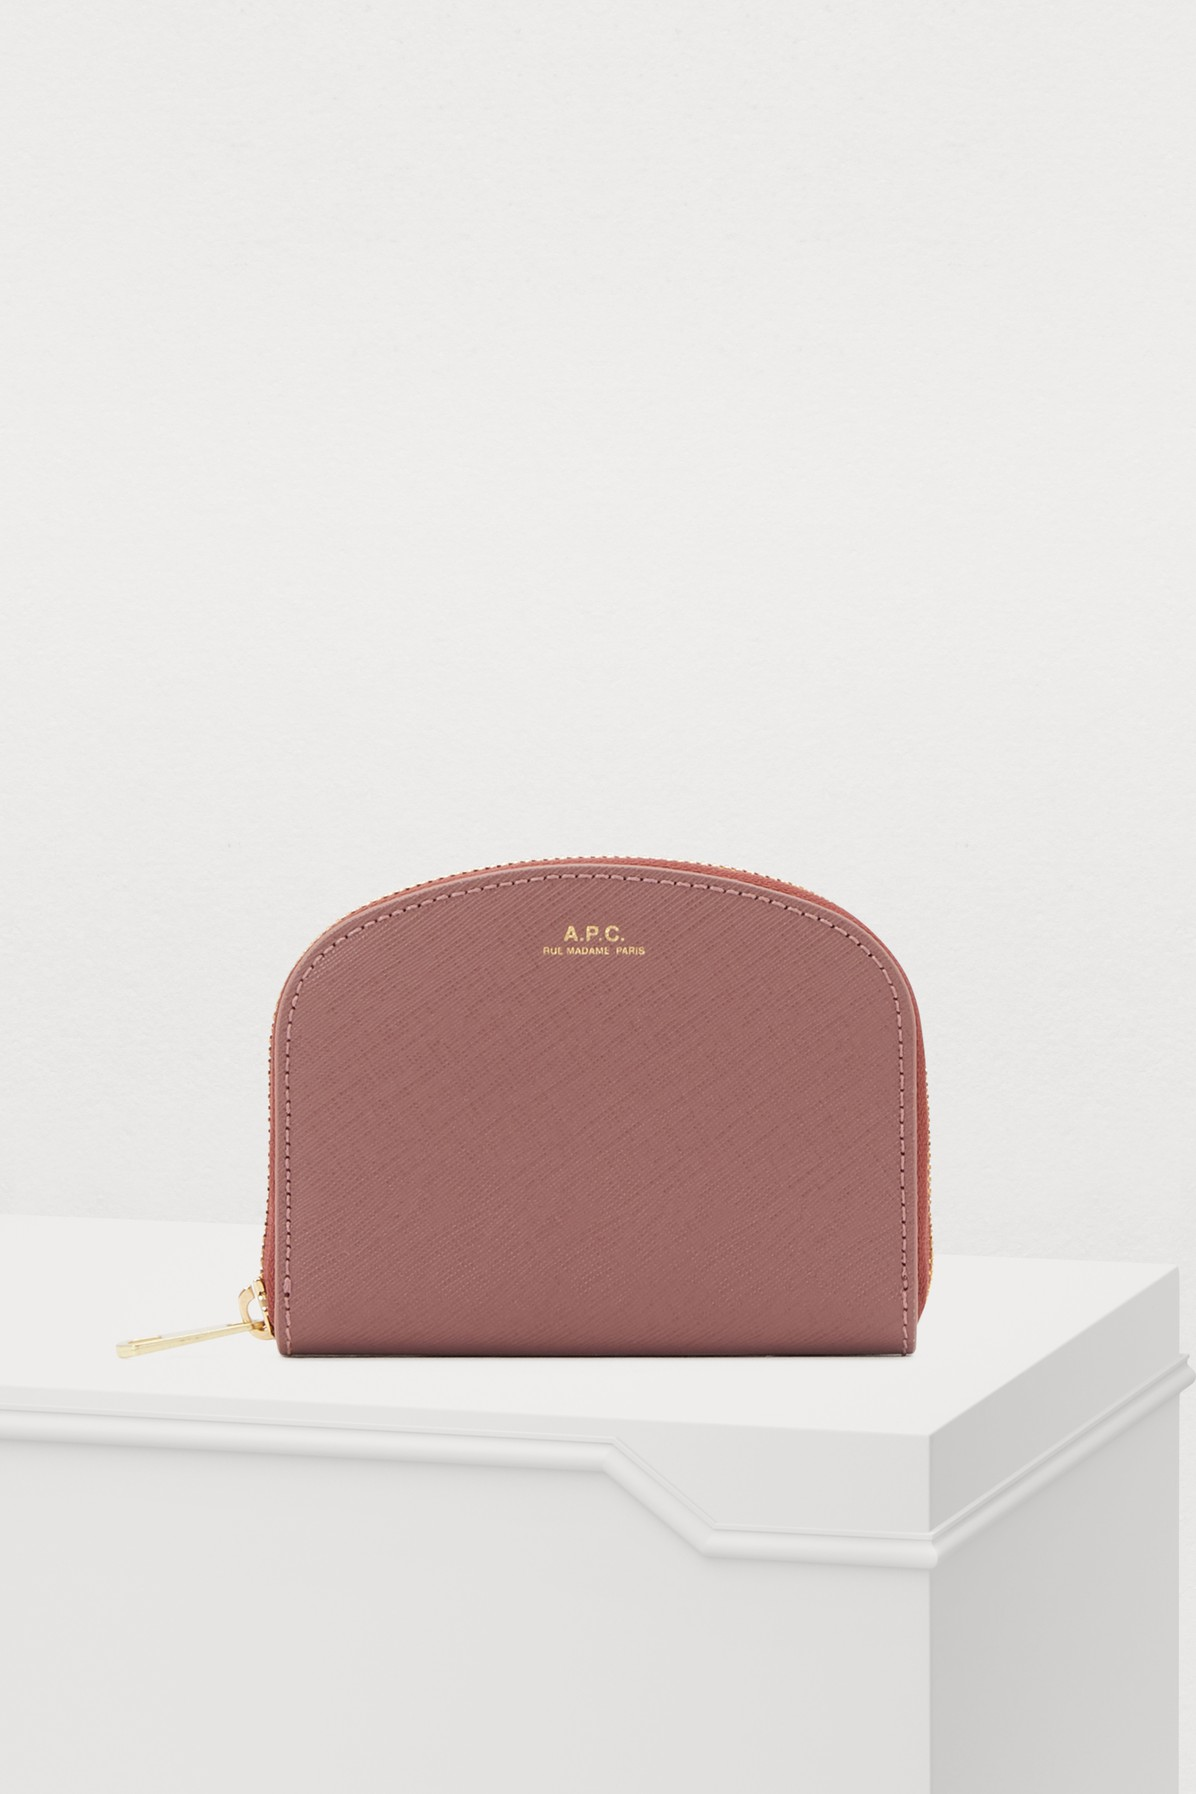 Half-Moon Saffiano Leather Wallet in Light Pink